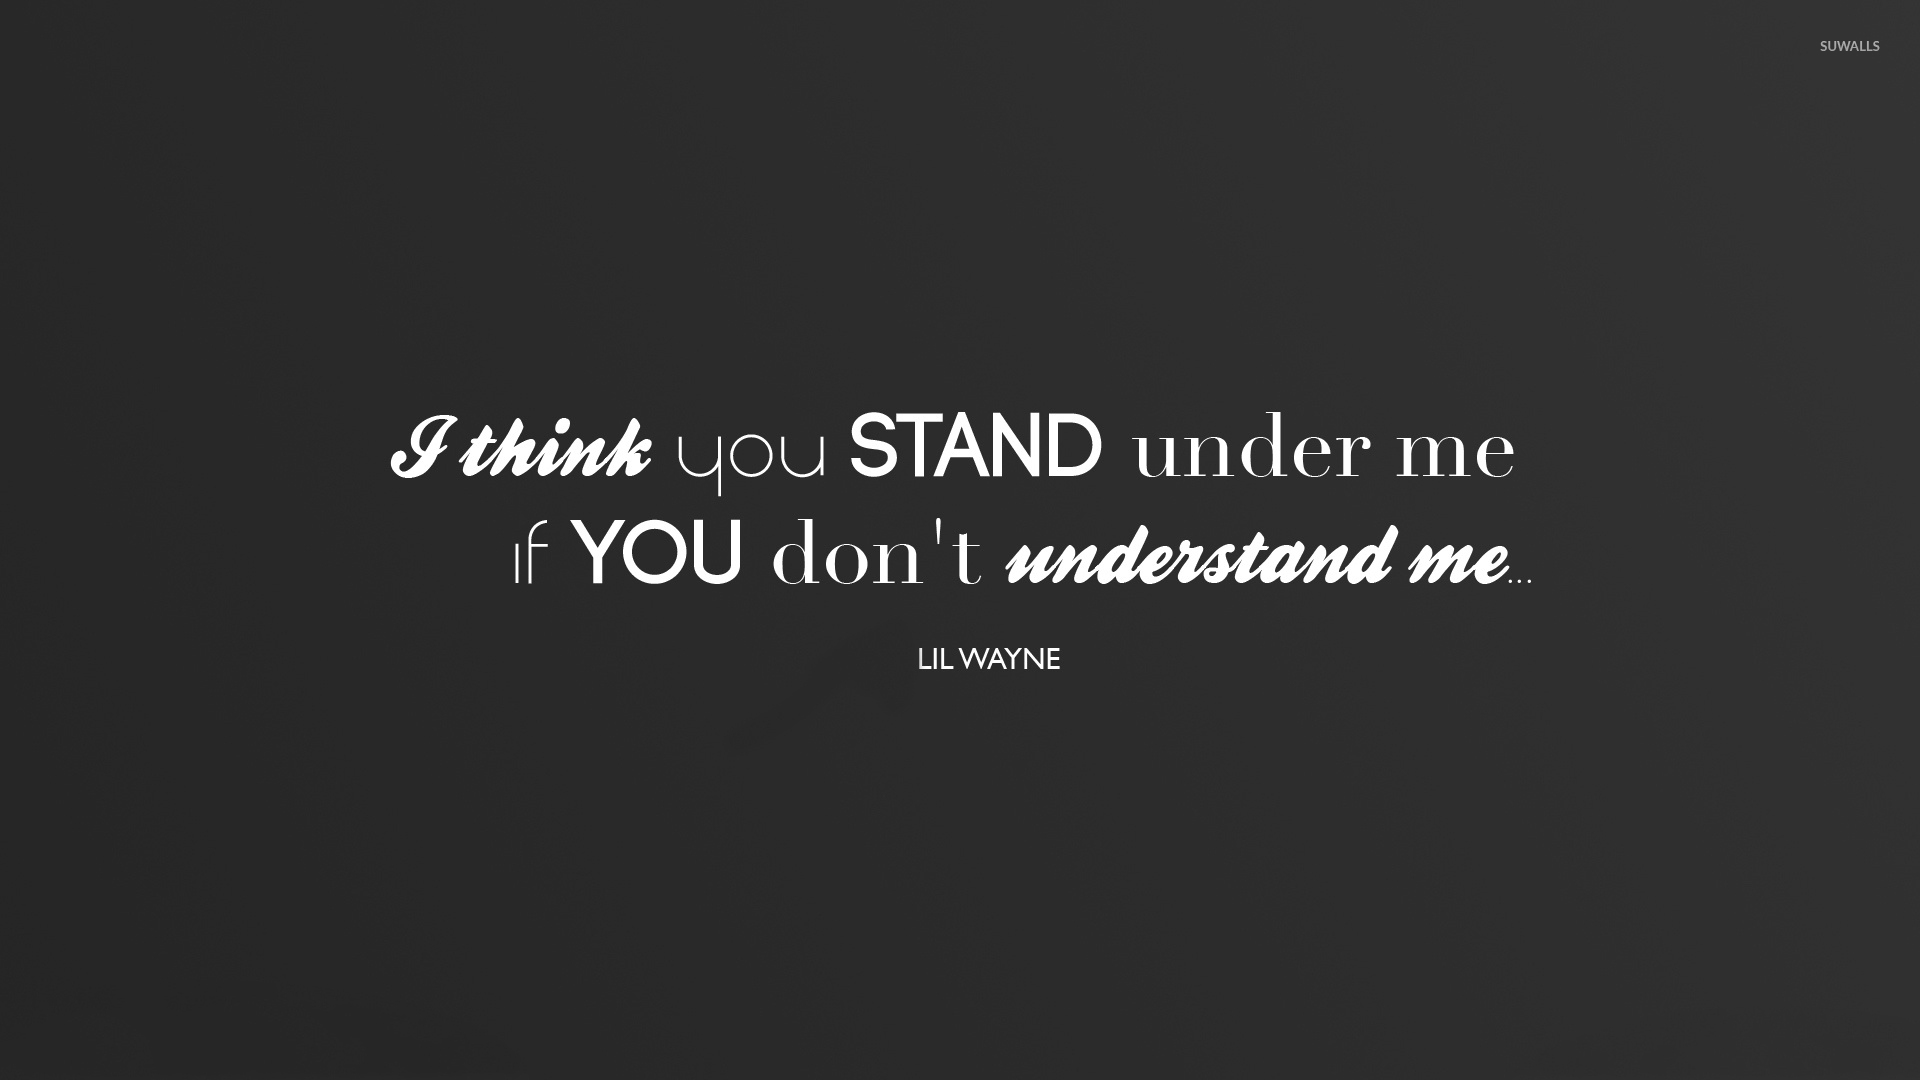 I Think You Stand Under Me Wallpaper